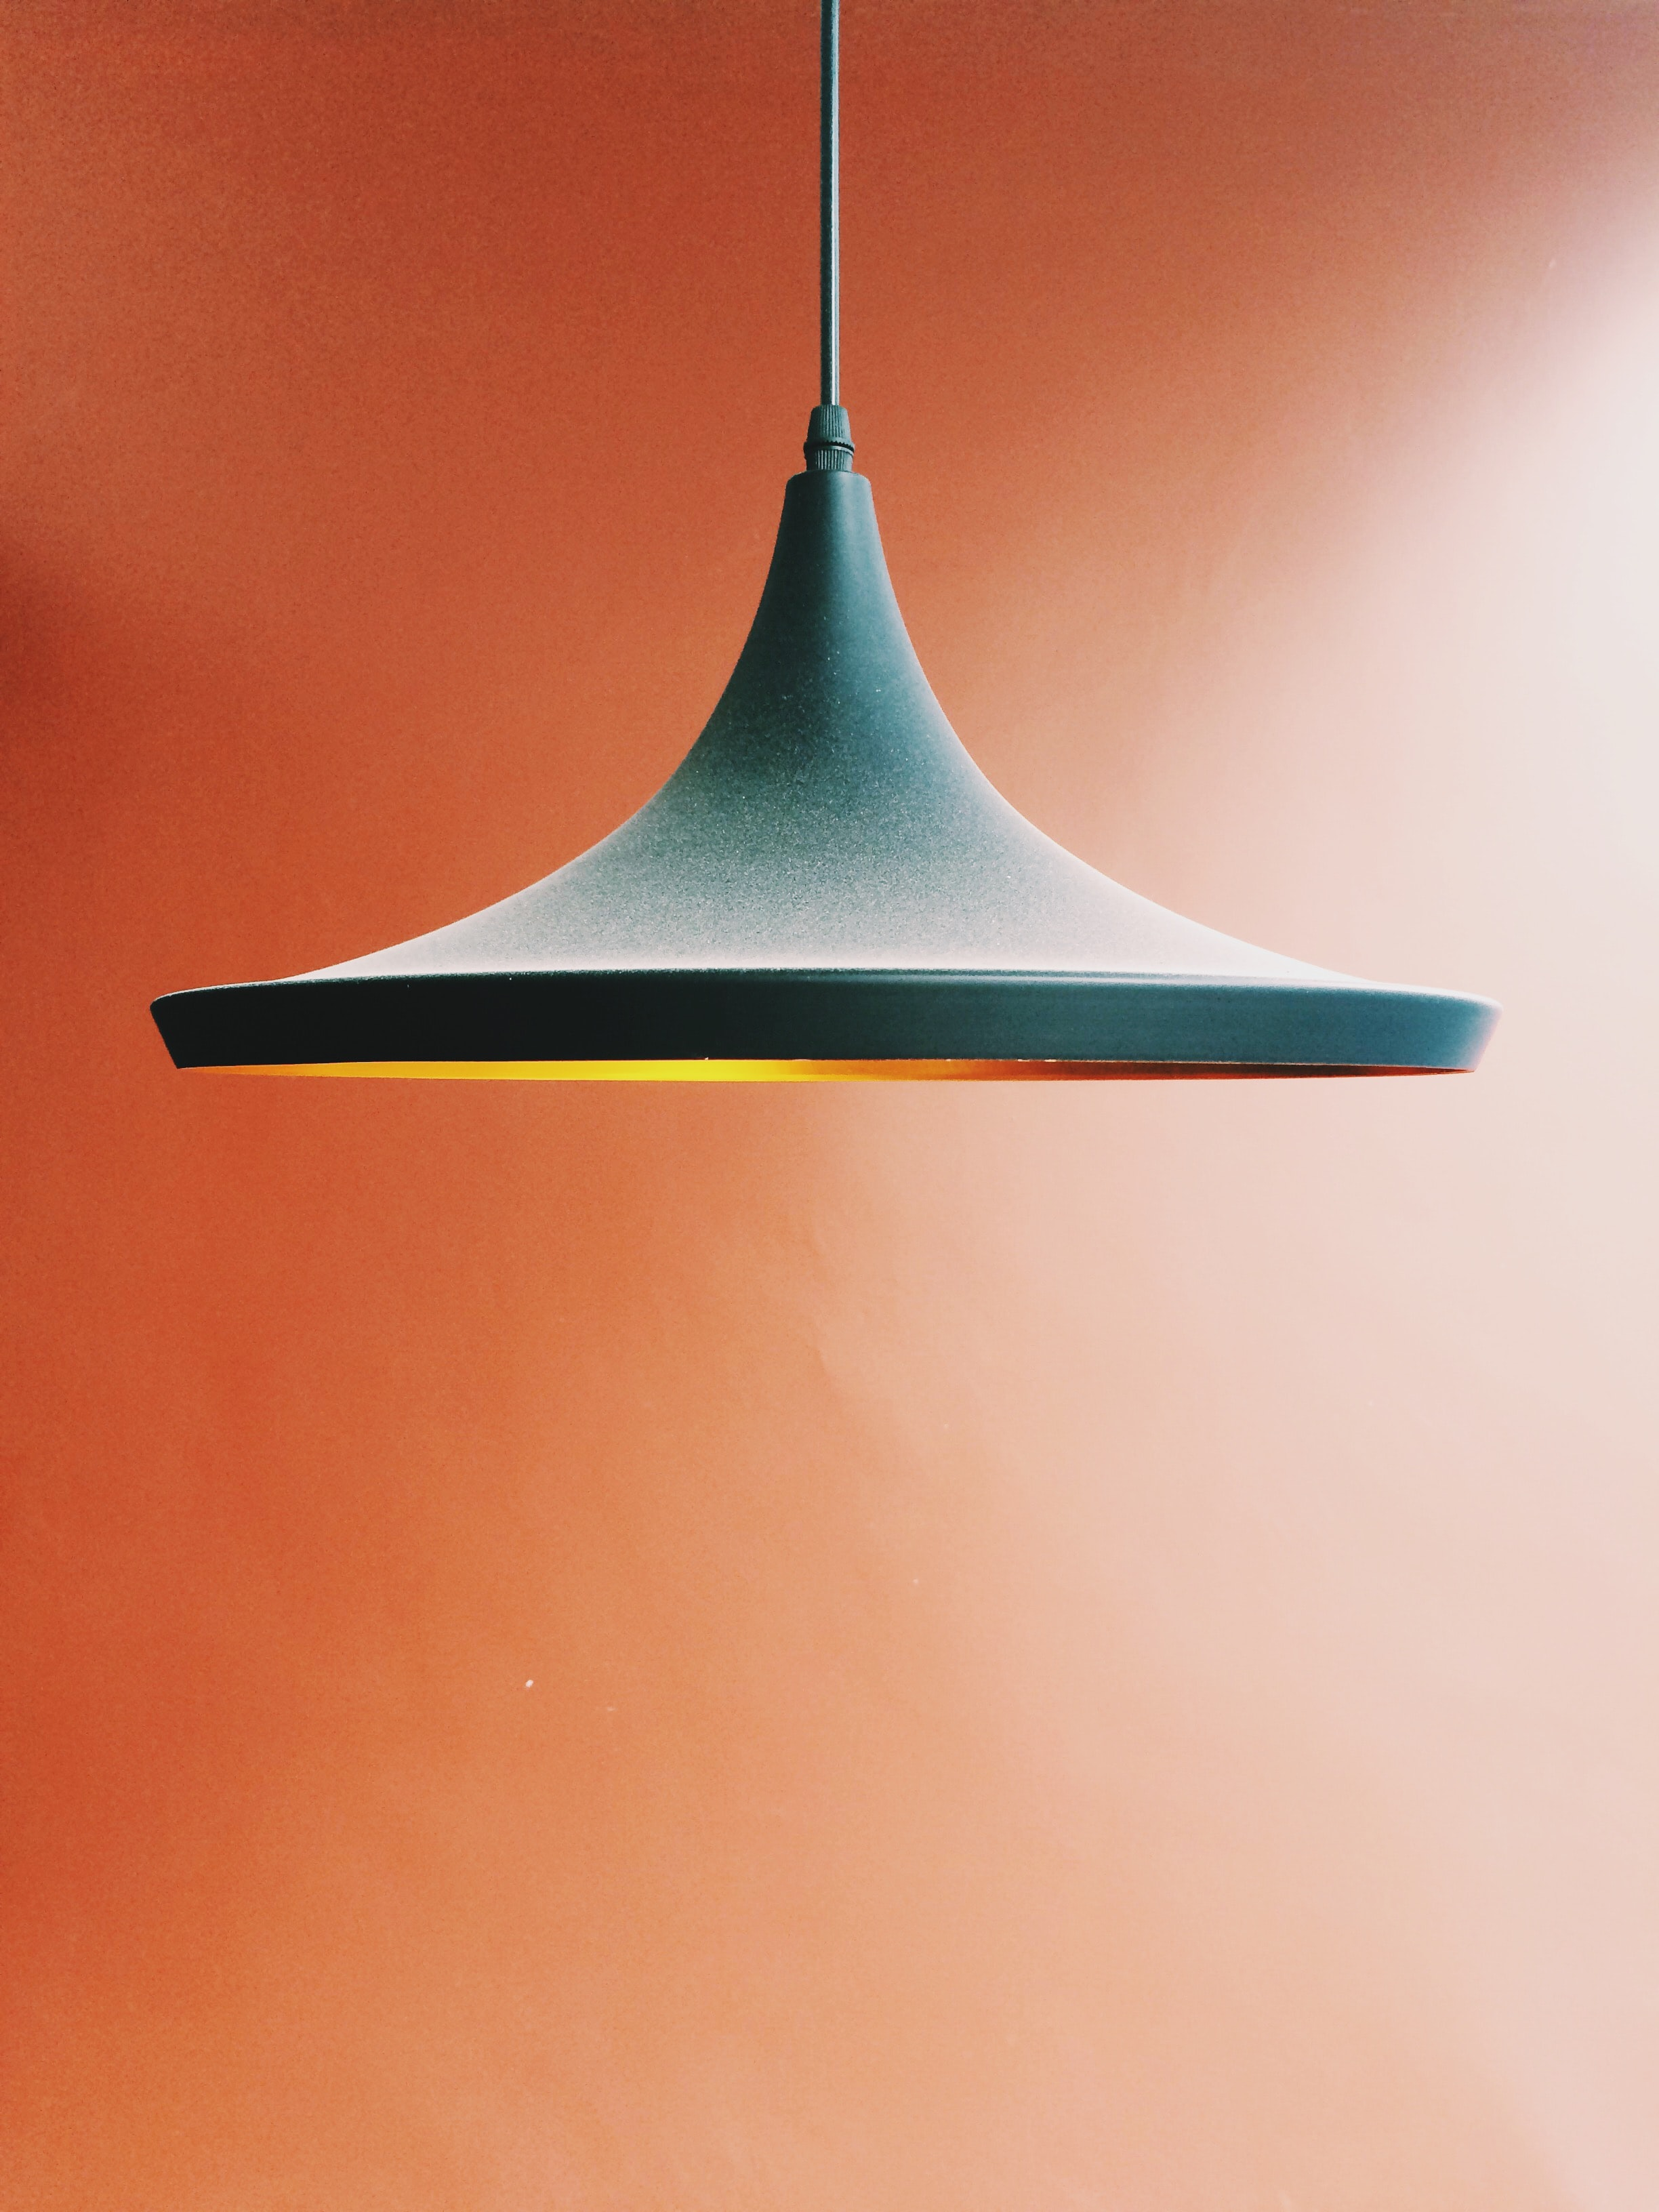 pendant lamp in orange background